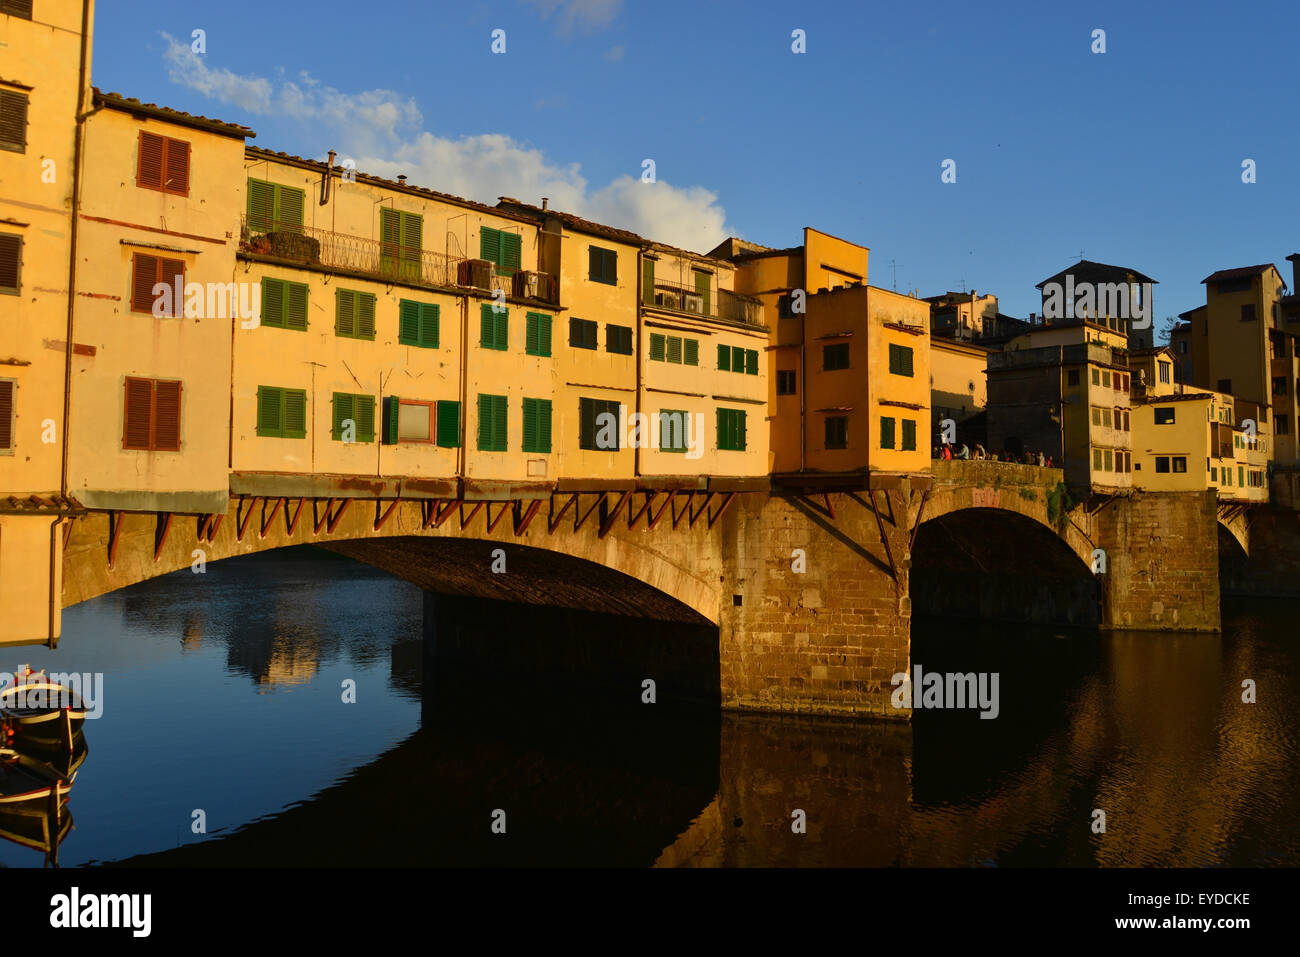 the famous Ponte Vecchio in evening light - Stock Image